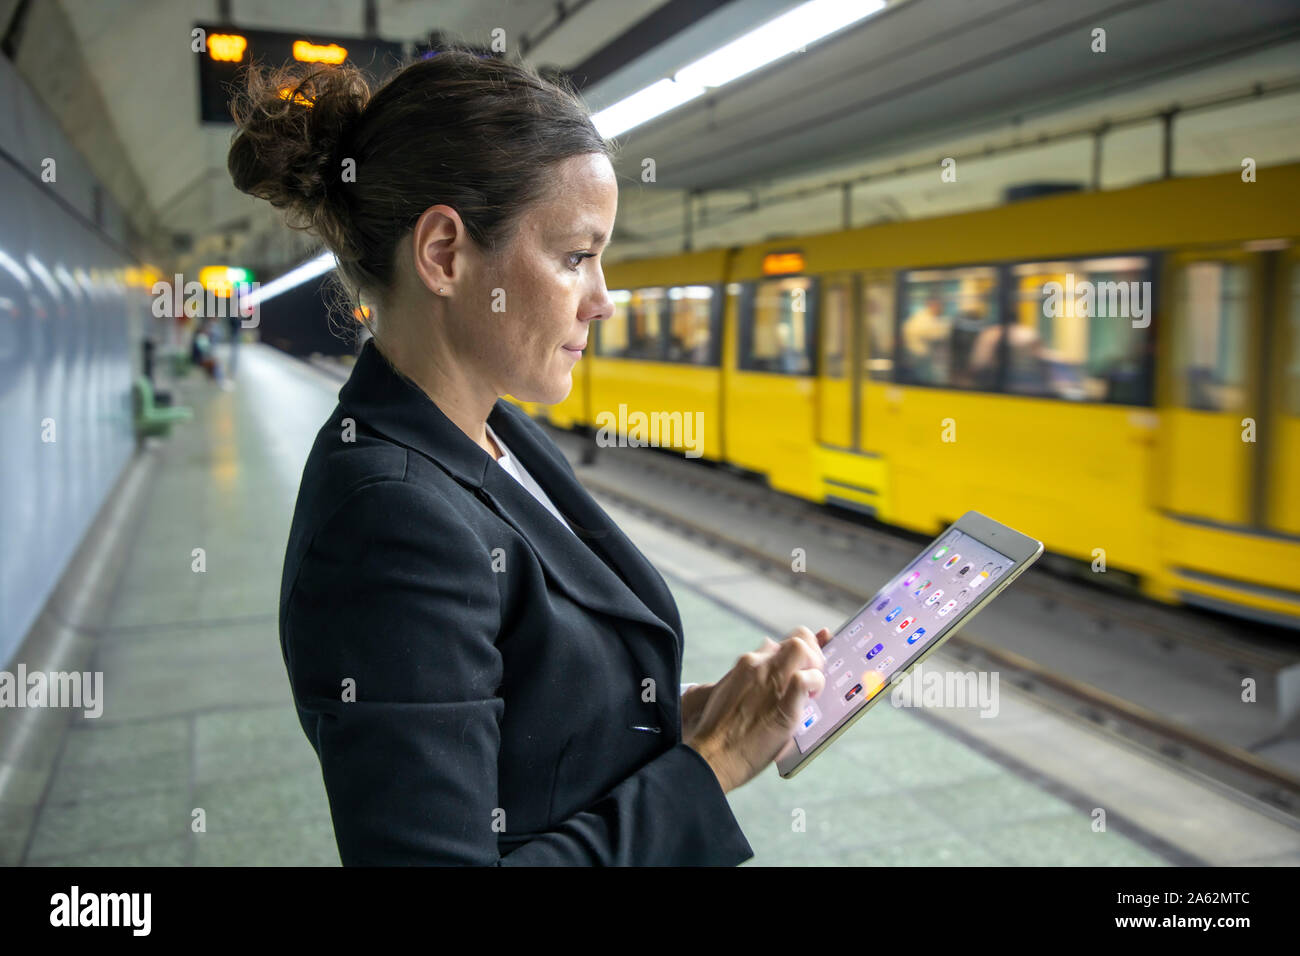 A woman works up, from the road to work, on the road, mobile, subway station, Stock Photo